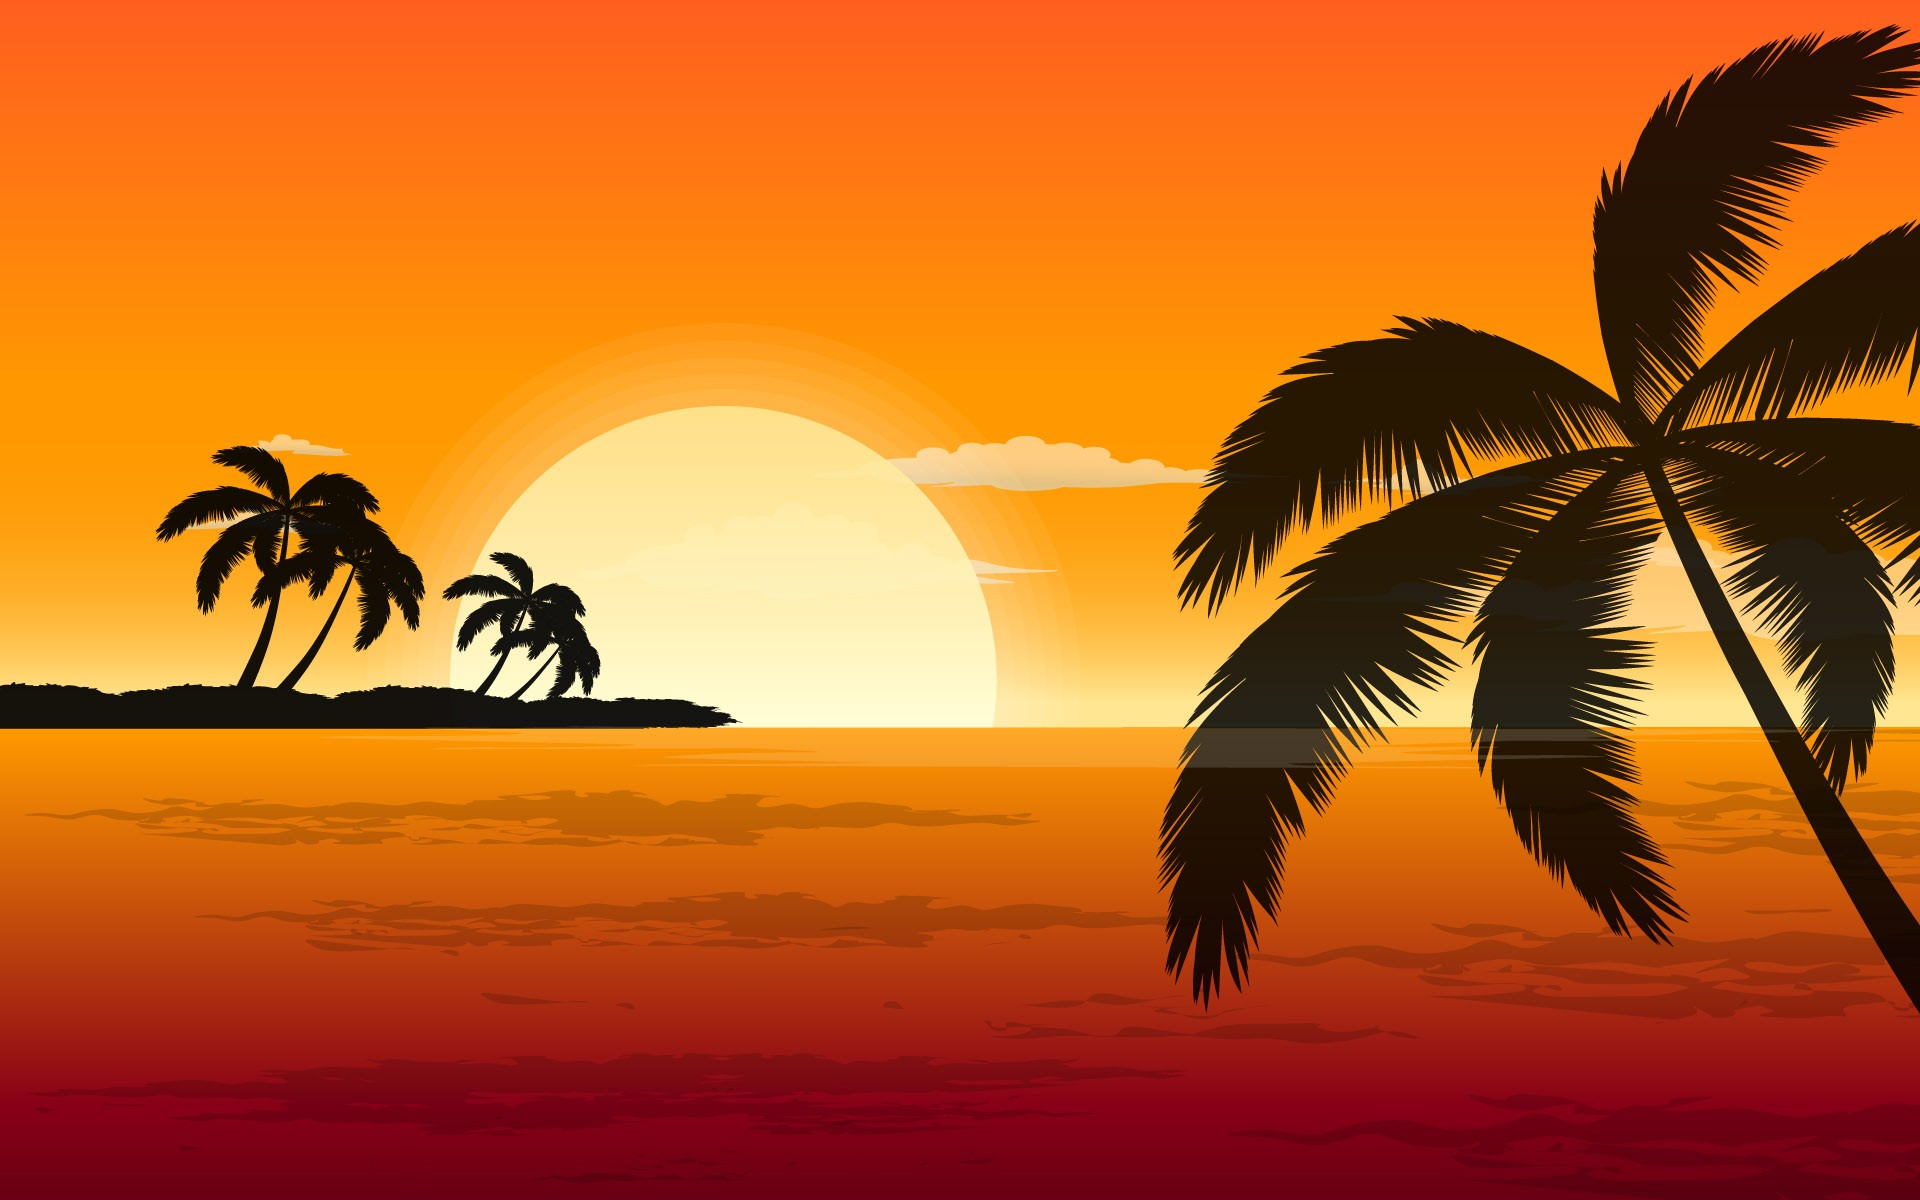 Drawn palm tree sunset Beach Palm Drawing TVRAGE Trees